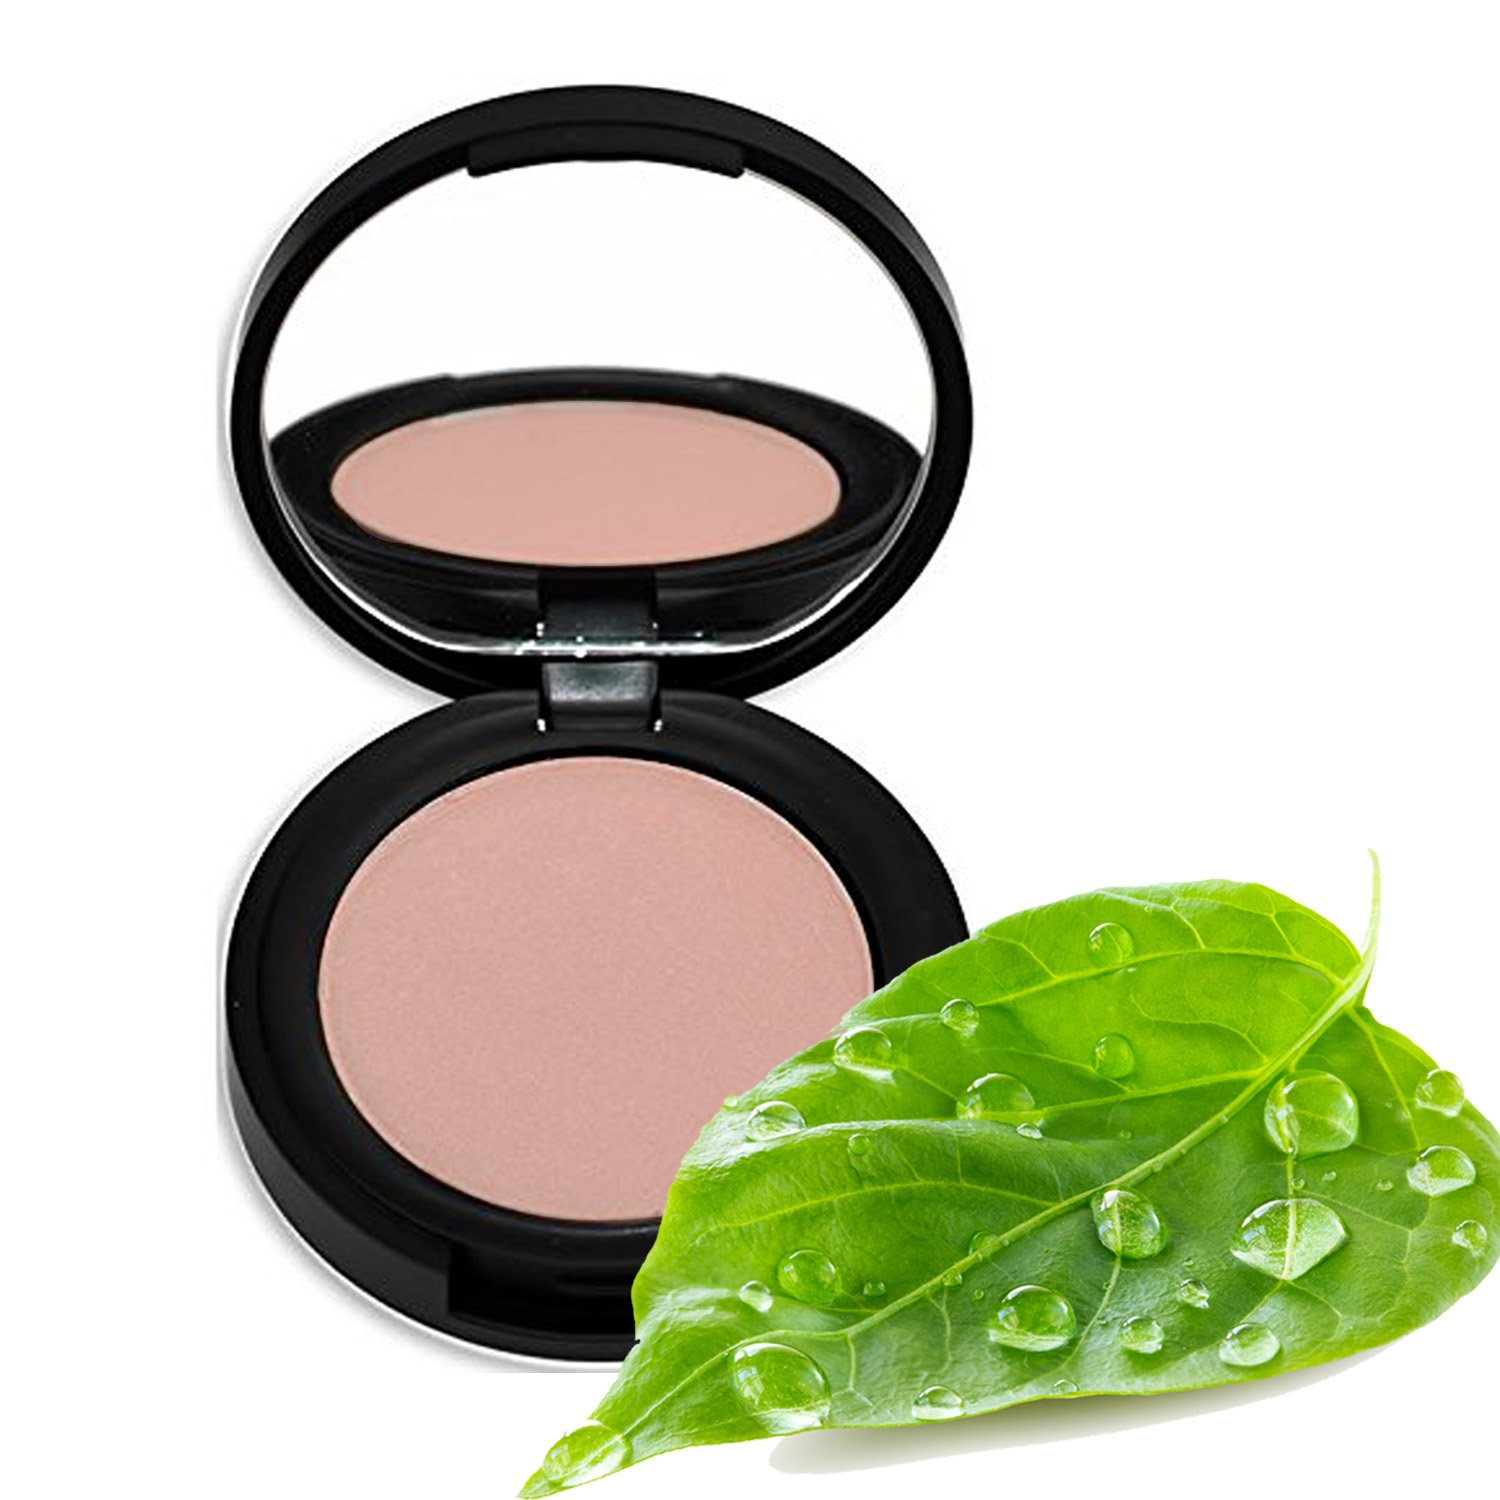 Better'n Ur Cheeks Mineral Blush (FLUSH) - Organic Botanicals & Minerals - Cruelty Free - Talc Free - Silky - Long Lasting - Made in USA